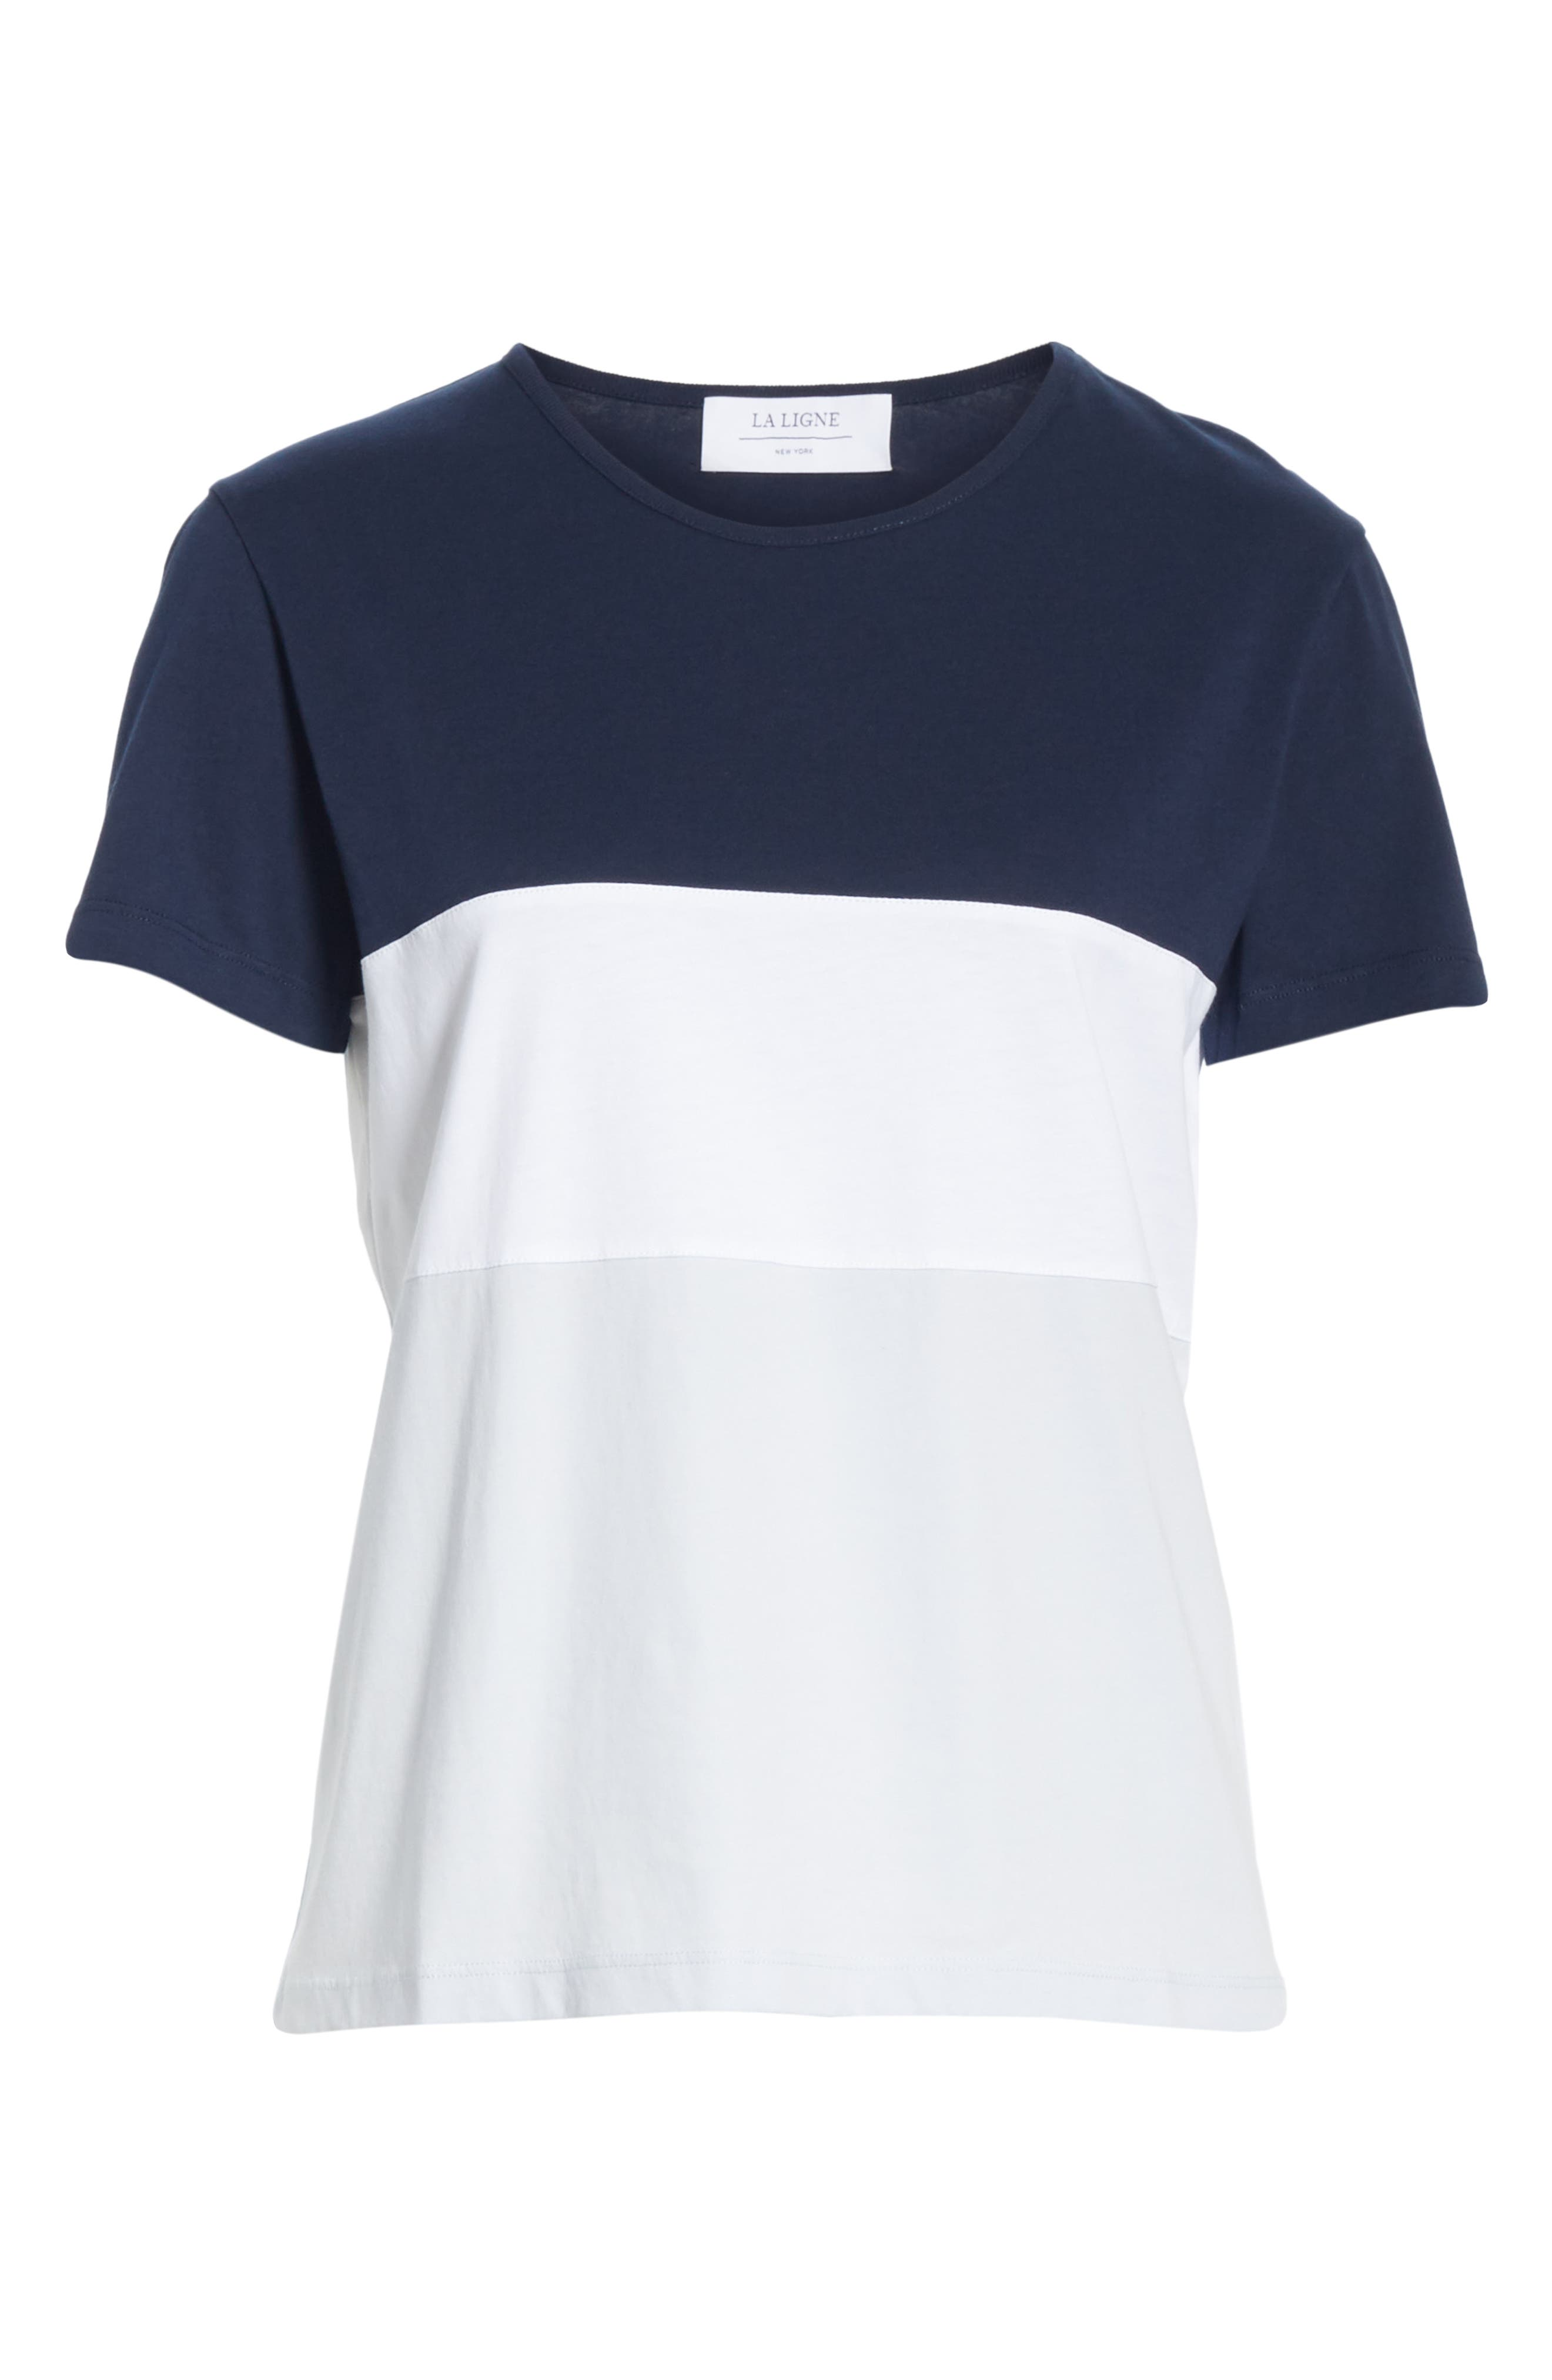 Colorblock Tee,                             Alternate thumbnail 6, color,                             NAVY WHITE BLUE COLOR BLOCK